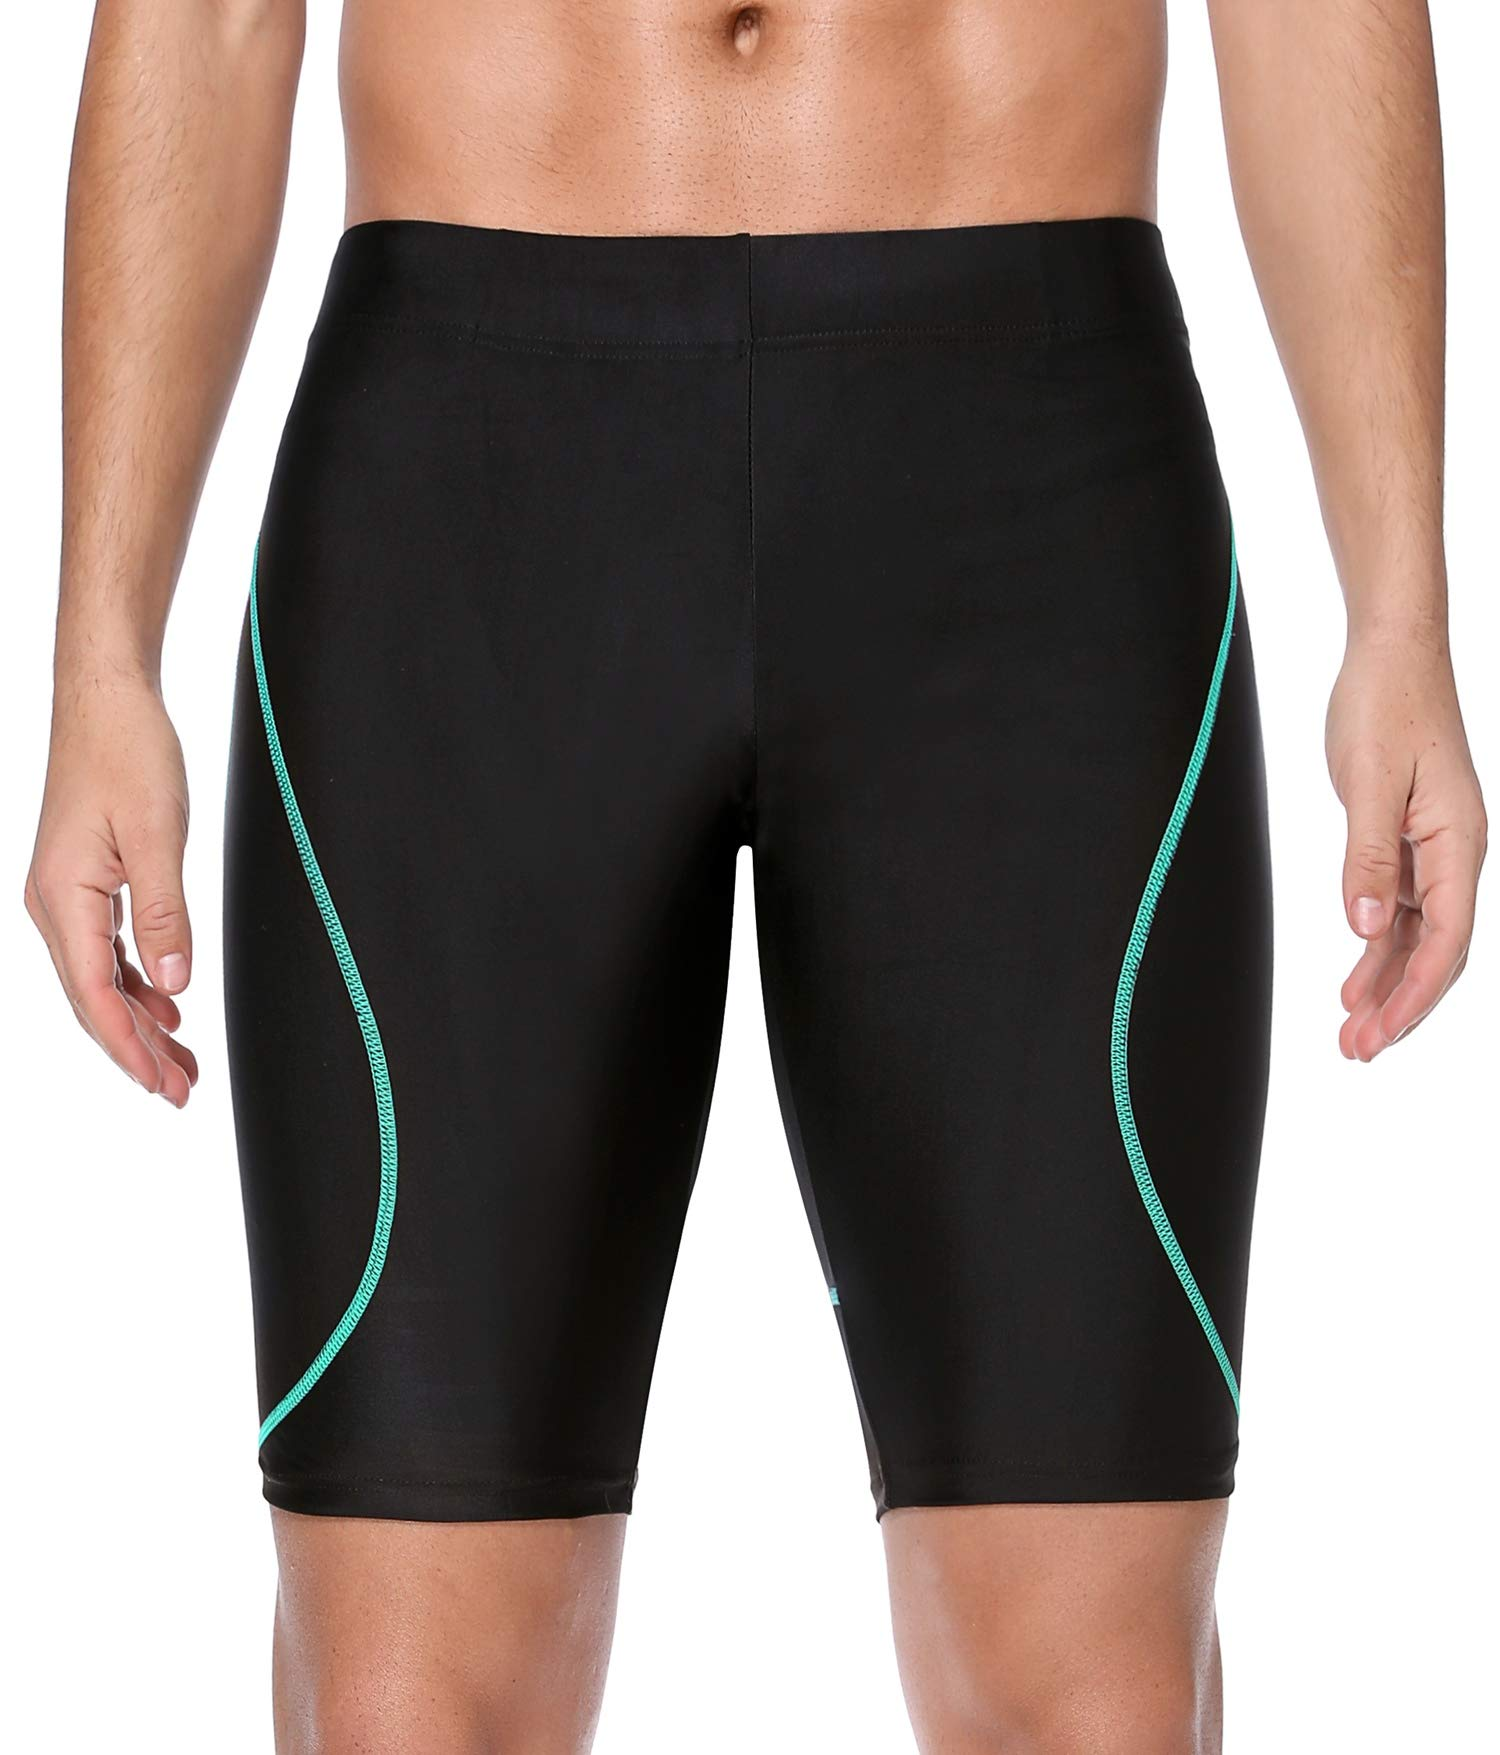 ATTRACO Mens Splice Tight Swimsuit Jammer Quick Dry Durable Swim Shorts Black 30 by ATTRACO